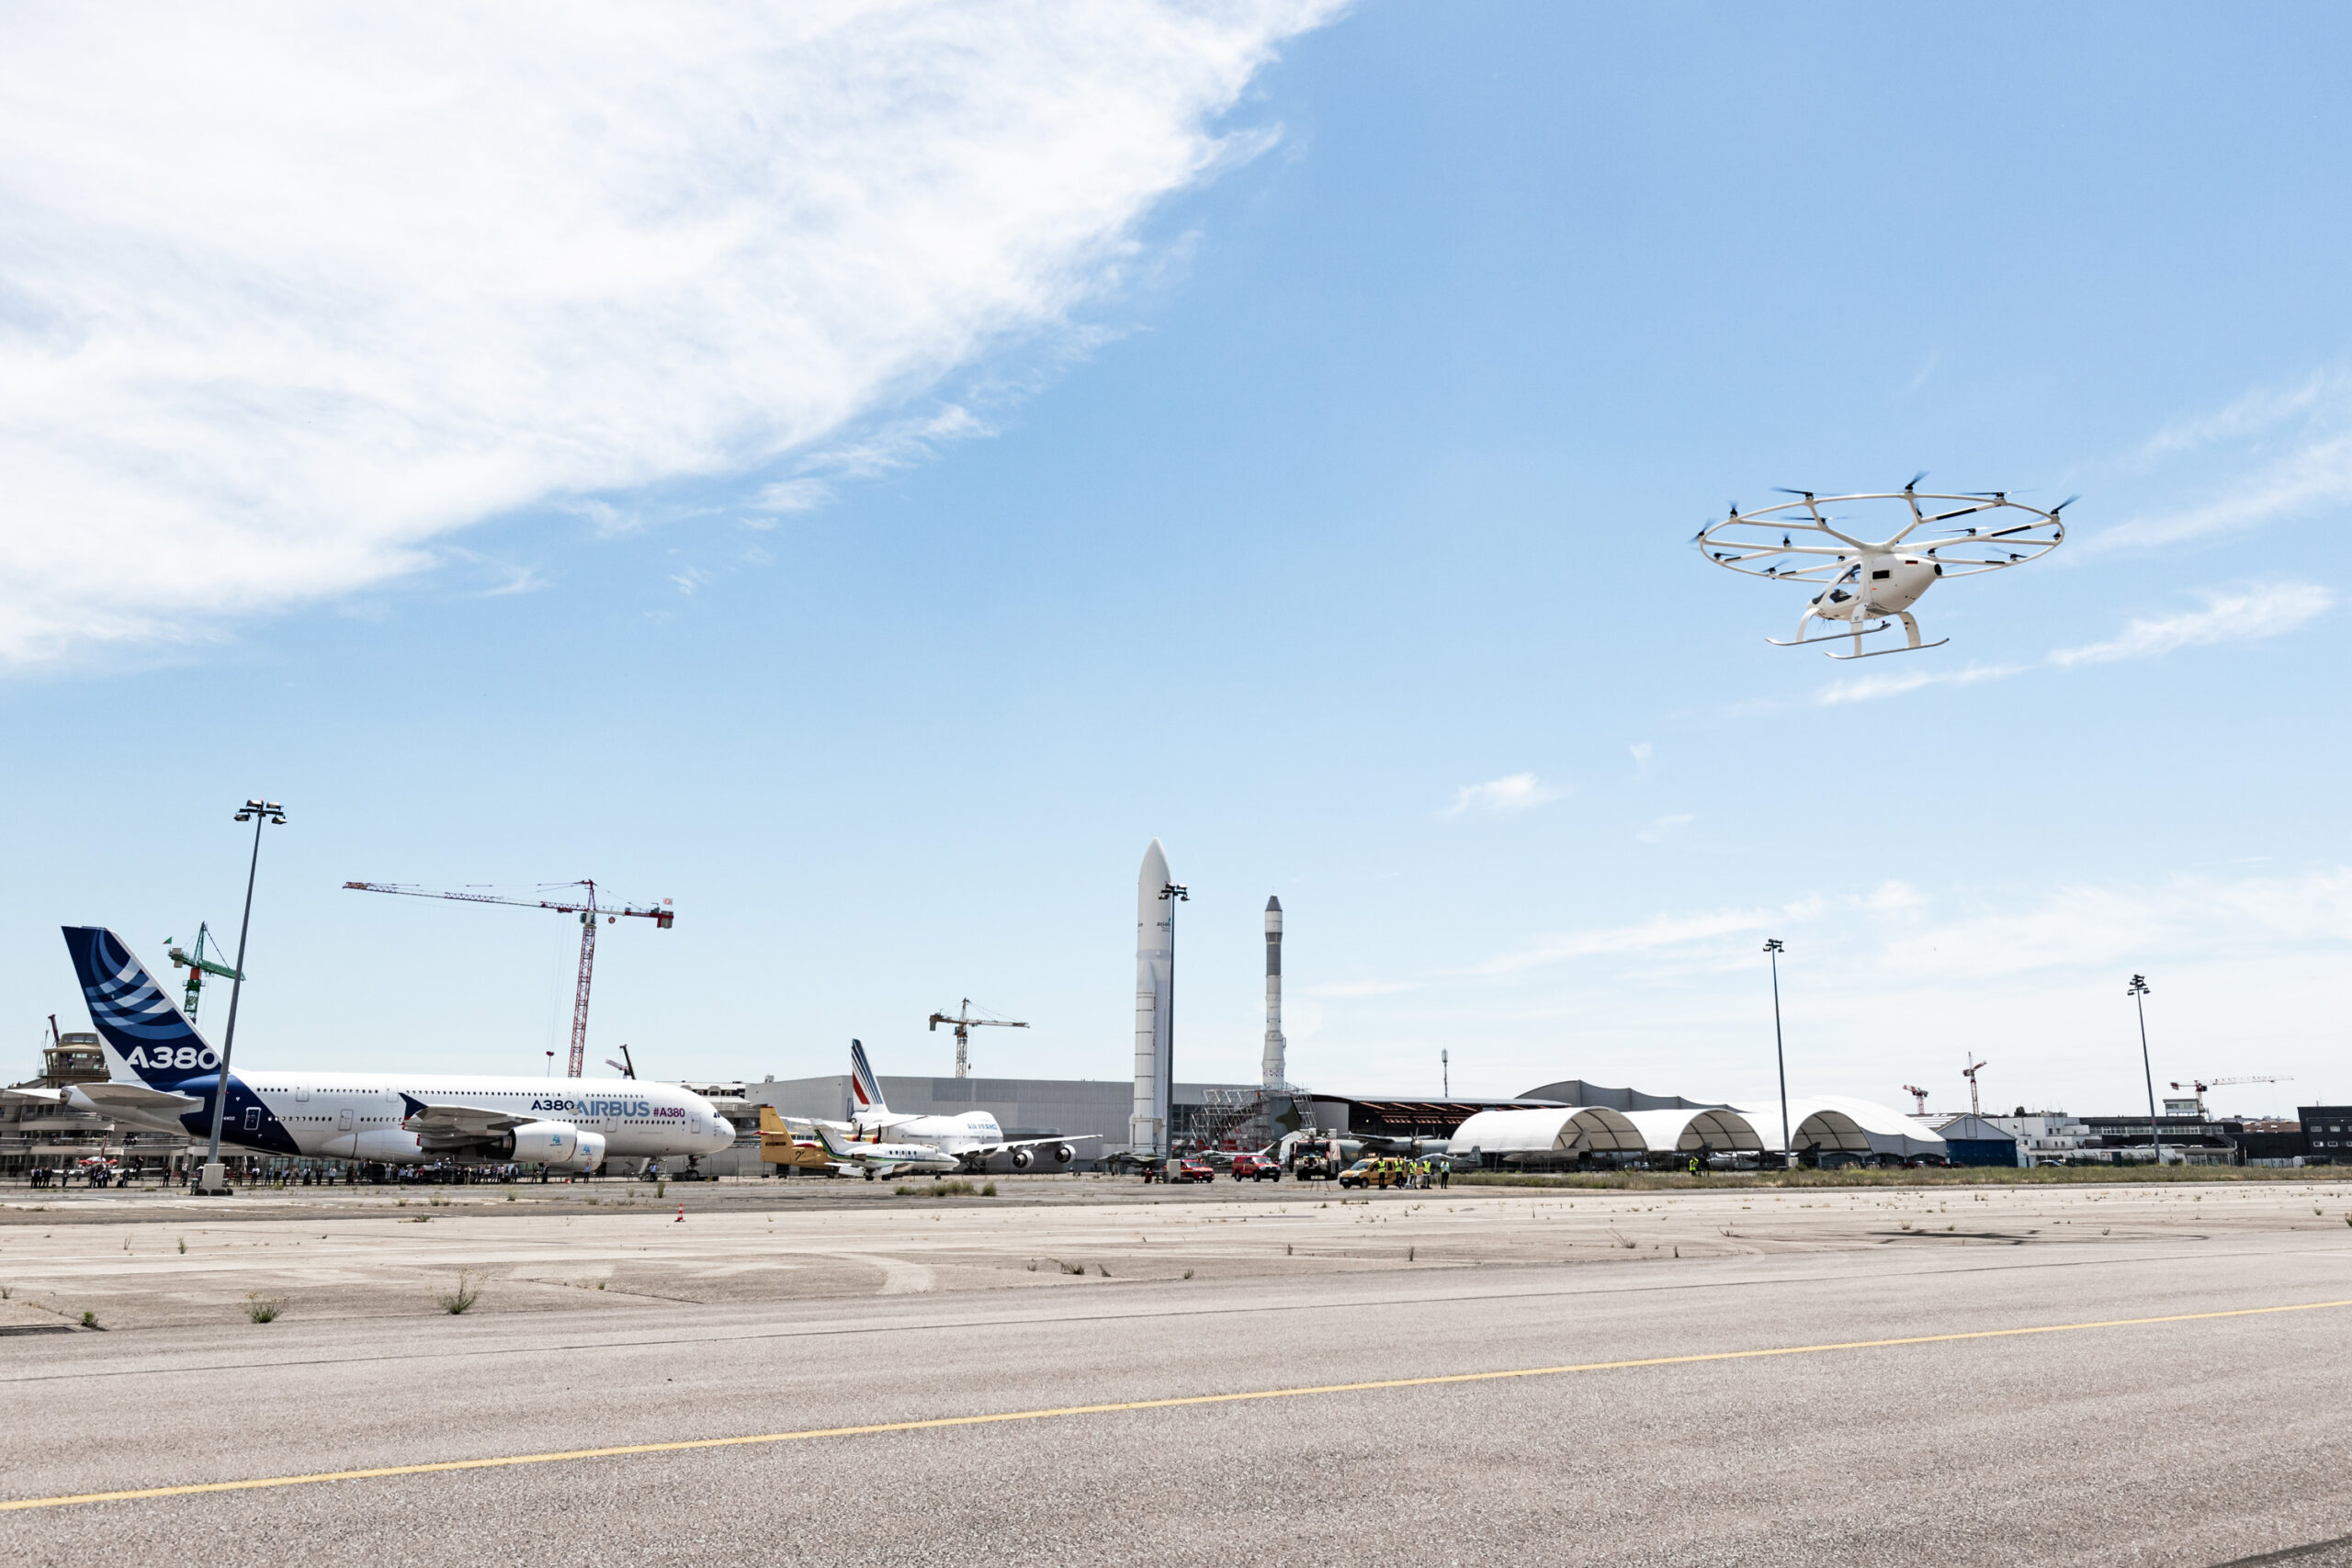 Volocopter flew 2X electric vertical take-off and landing at Le Bourget Airfield